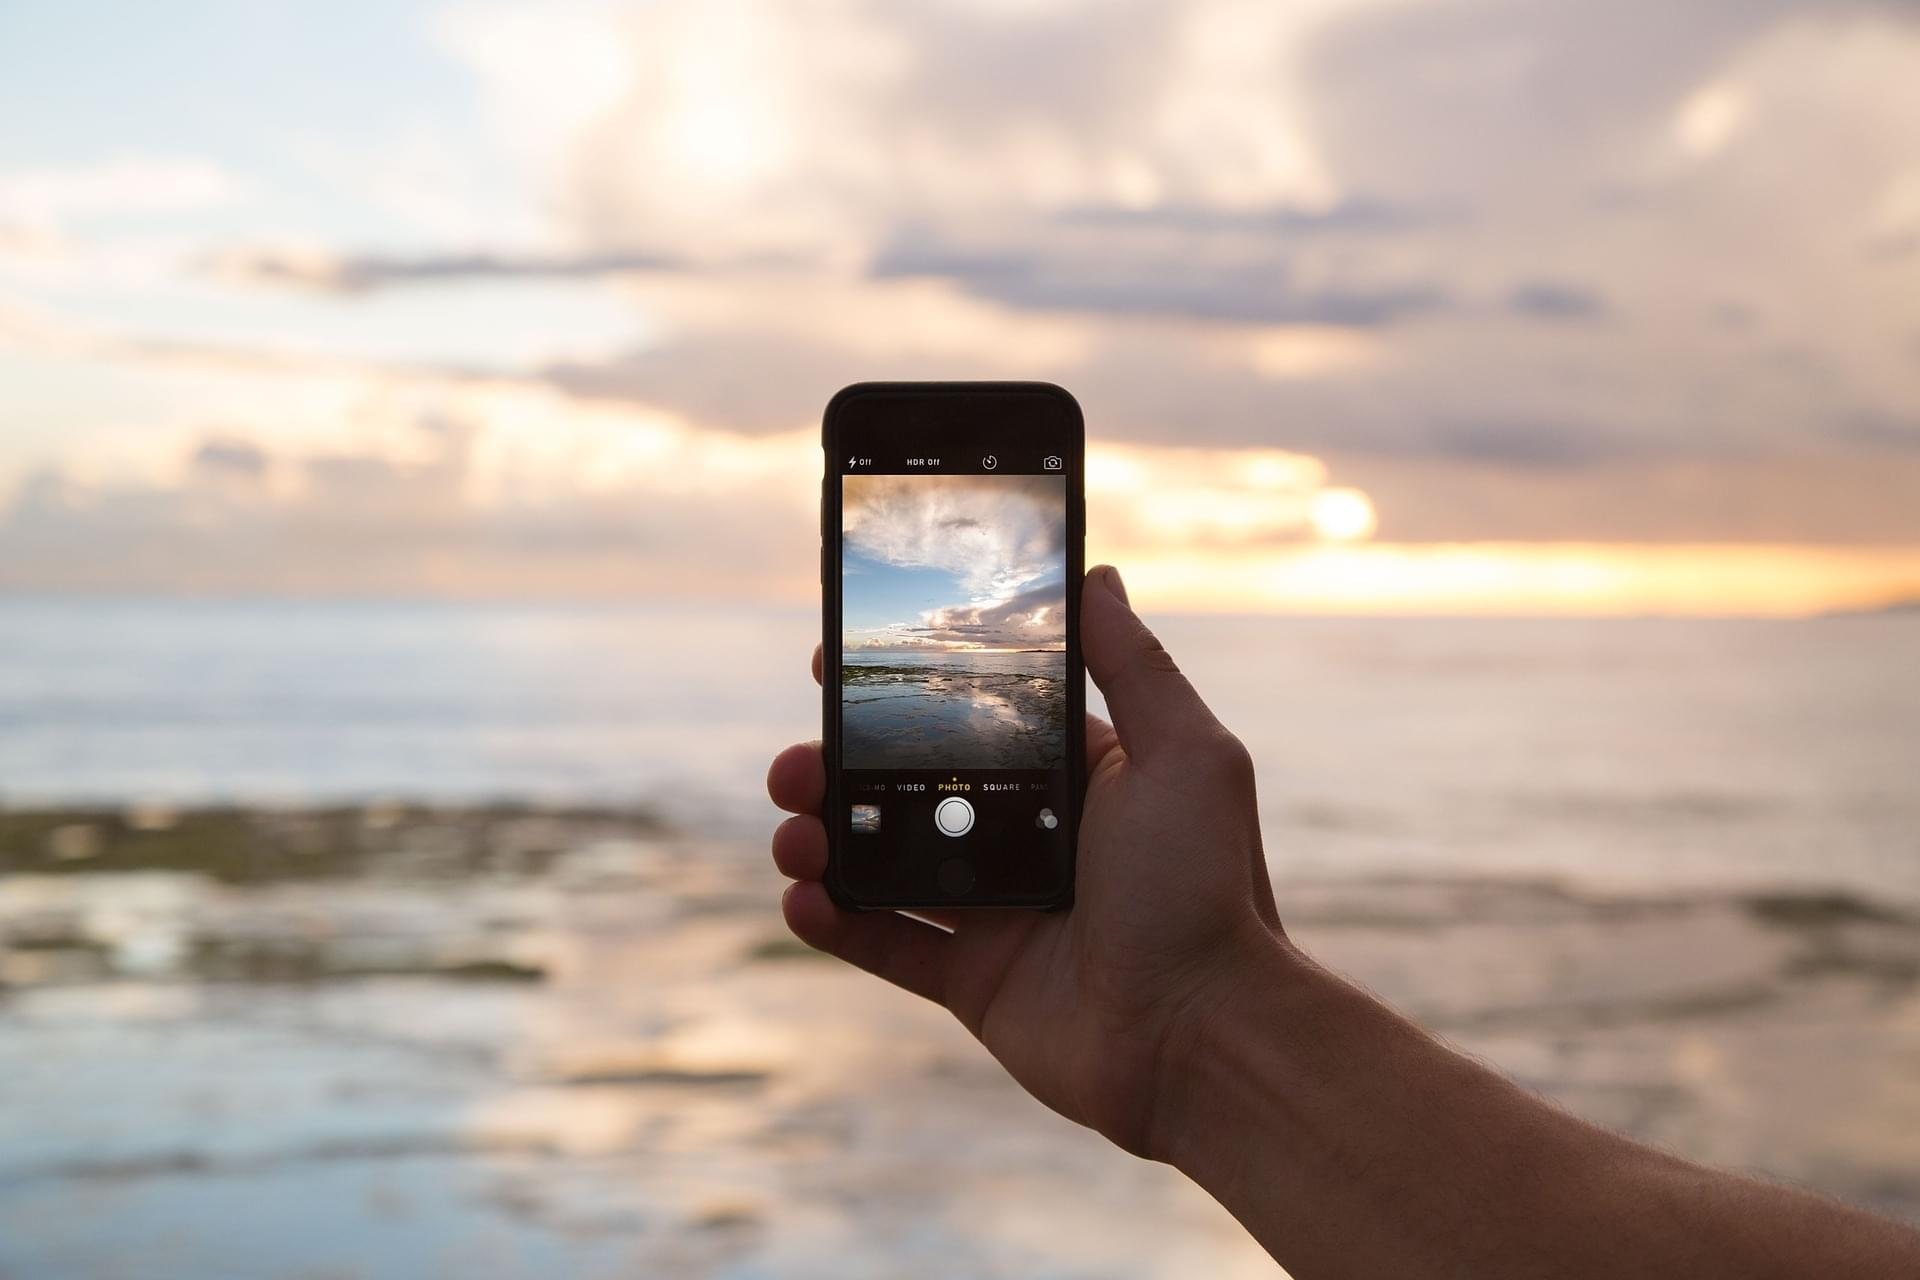 Have You Ever Missed a Life Moment Because You Were Trying to Capture It on Social Media?